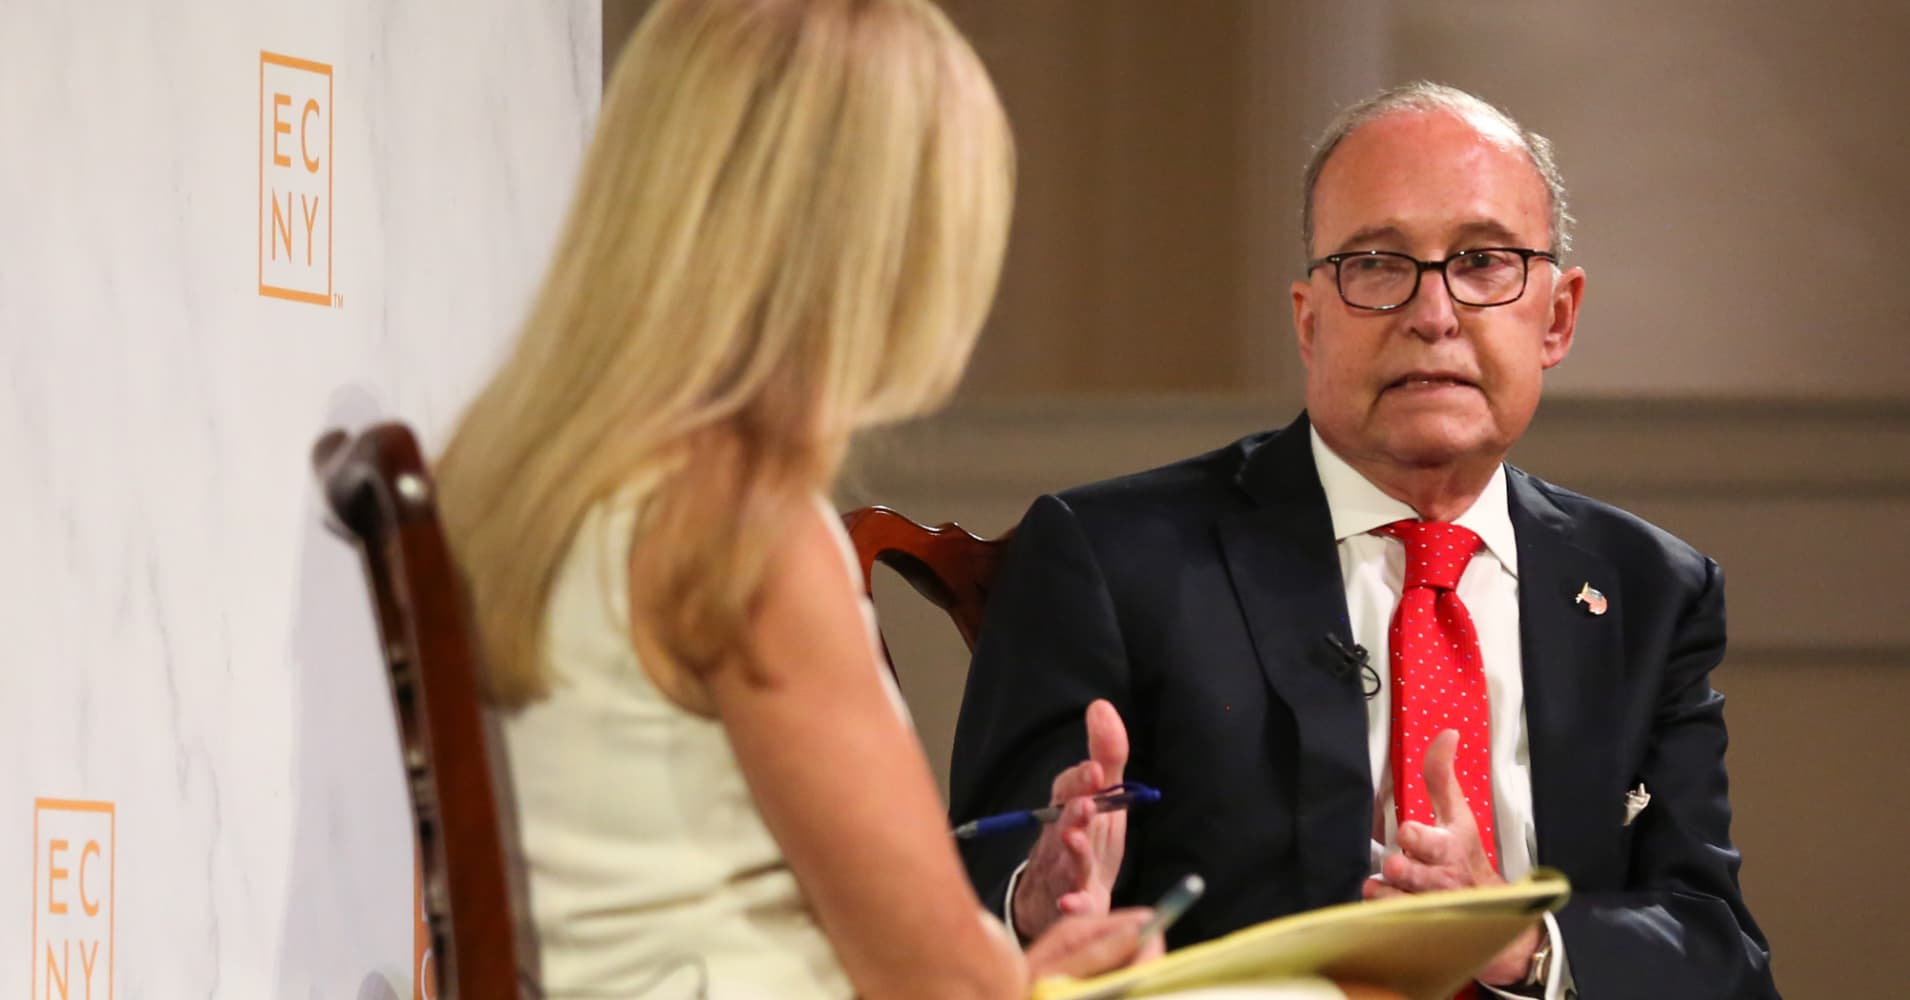 Kudlow: US has the hottest economy in the world today: 'We're crushing it'